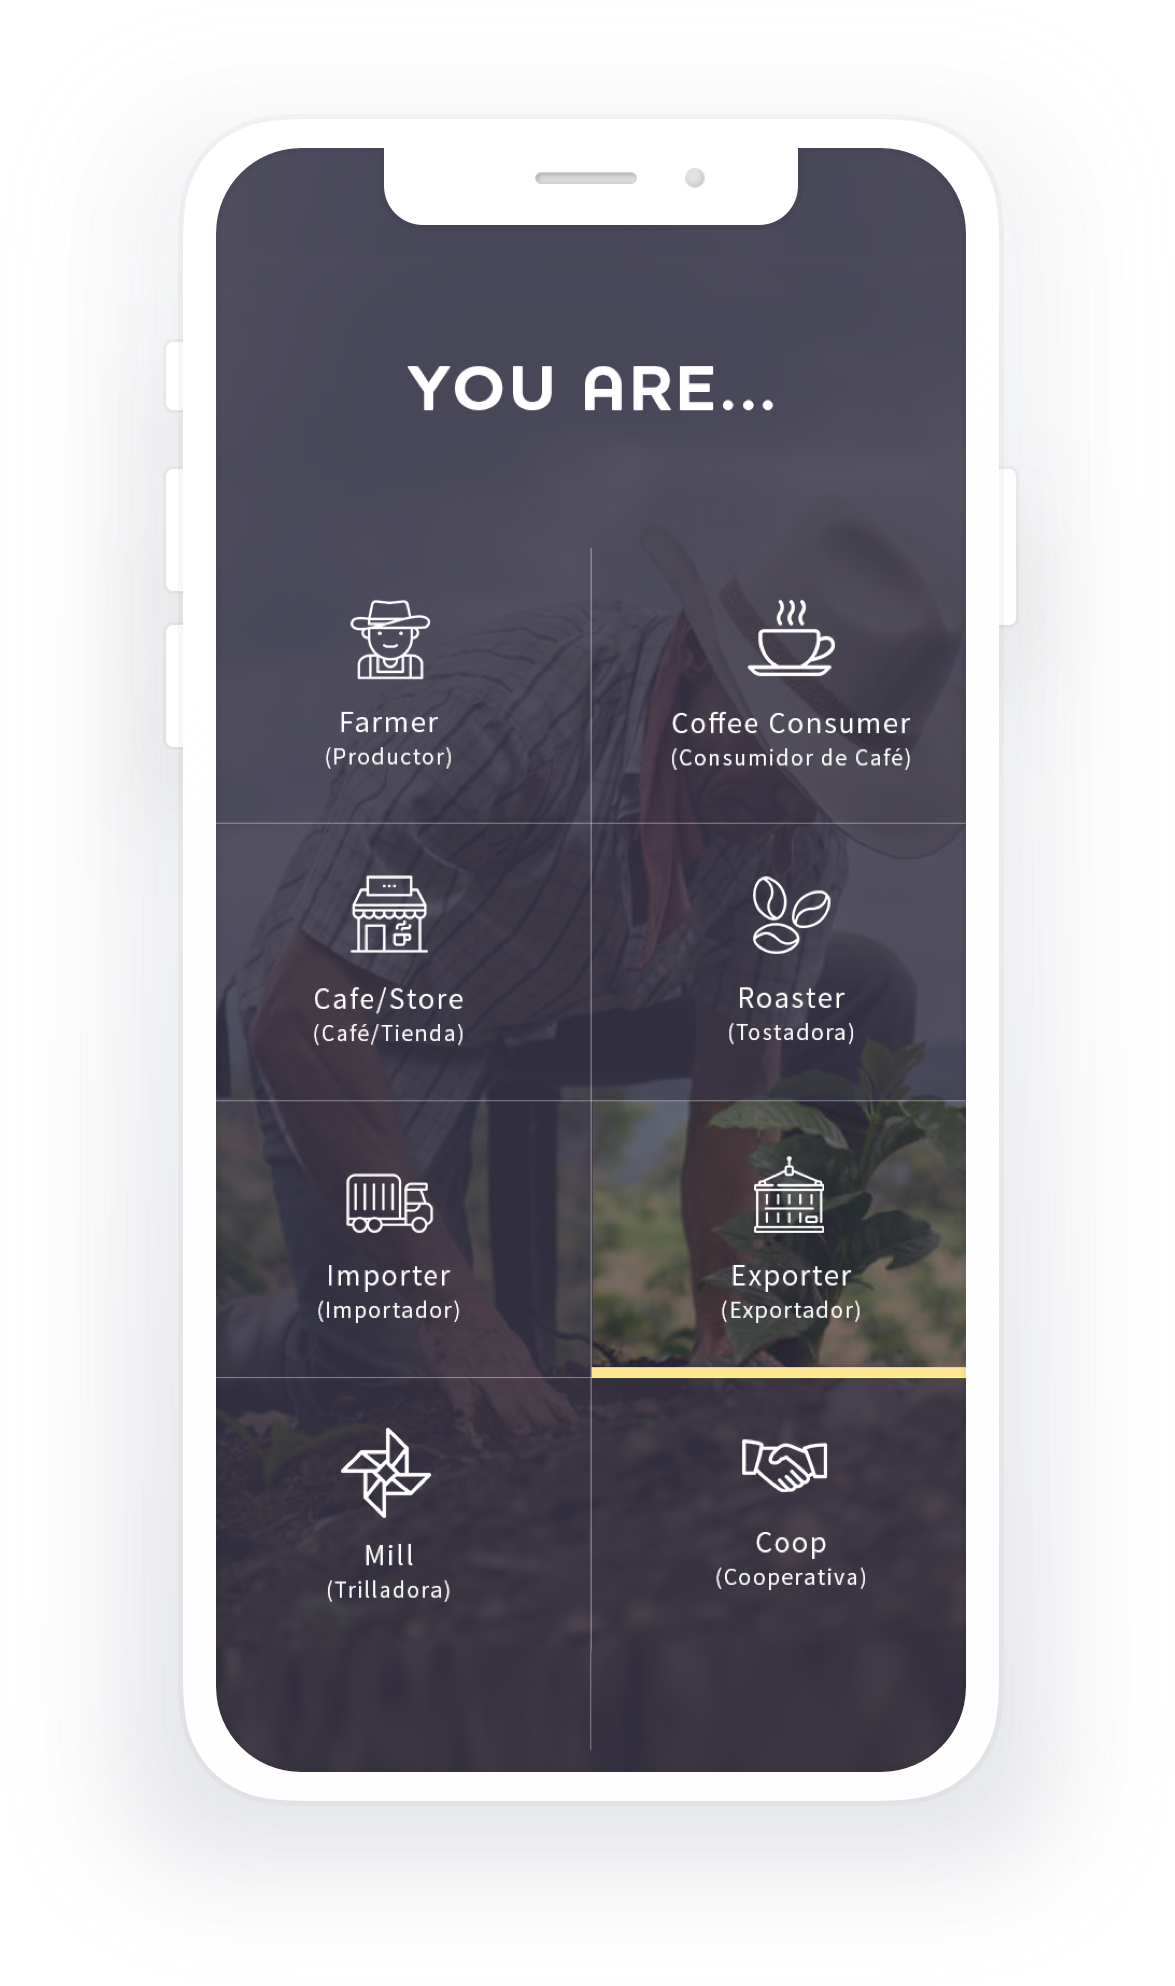 iFinca Case Study | A Blockchain-based Coffee Supply Chain Solution